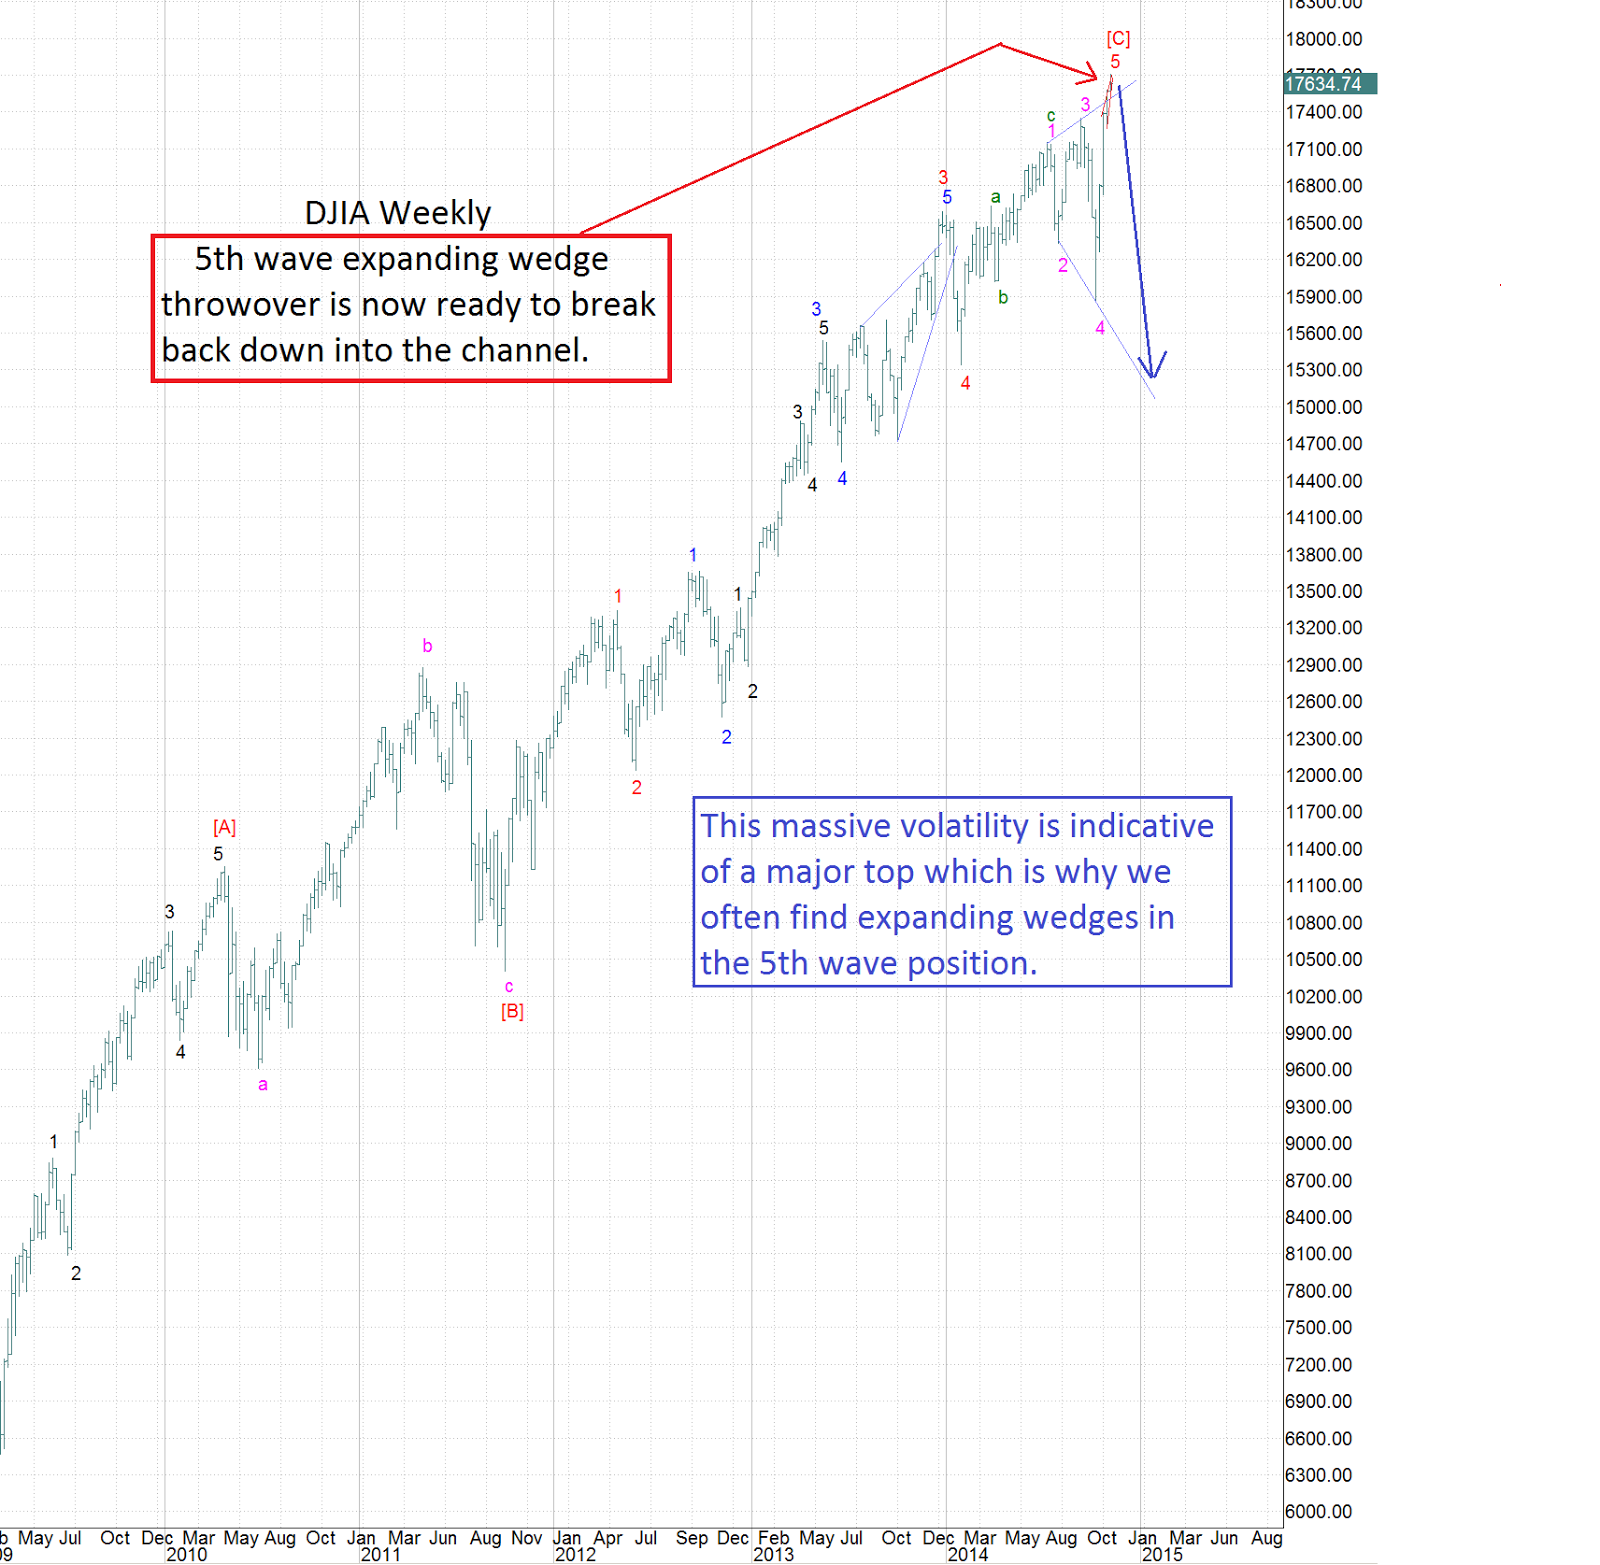 DJIA Is Likely Going To Begin A Major Reversal Next Week